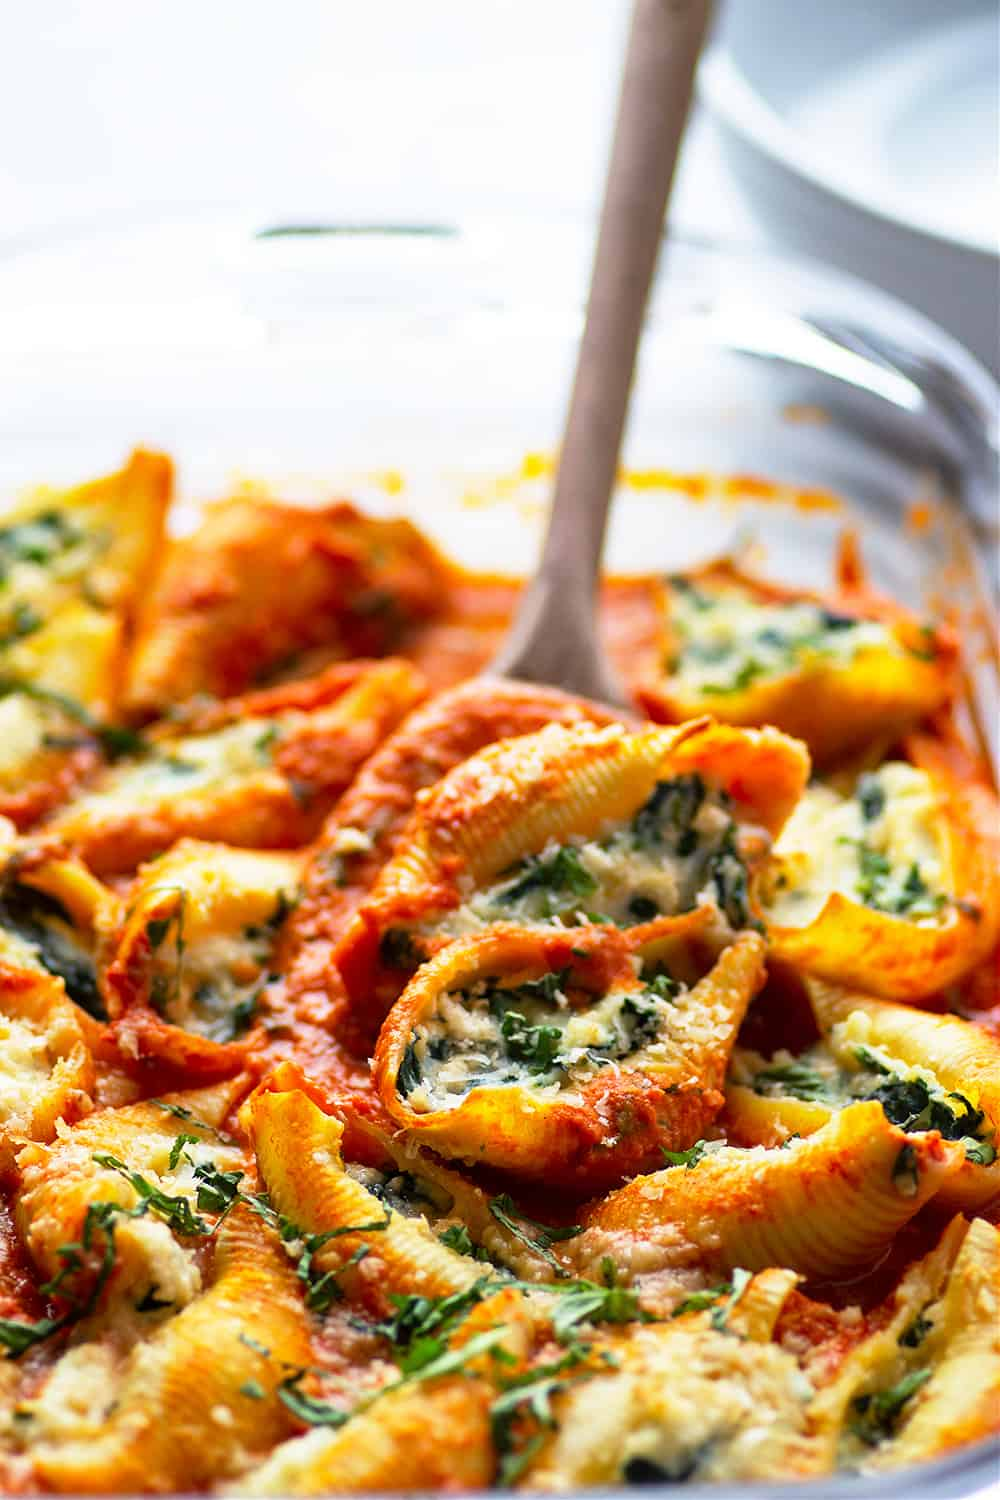 Stuffed with a creamy spinach ricotta filling and baked in a flavorful basil vodka sauce, these spinach ricotta stuffed shells are easy to prepare and will impress everyone you serve them to!